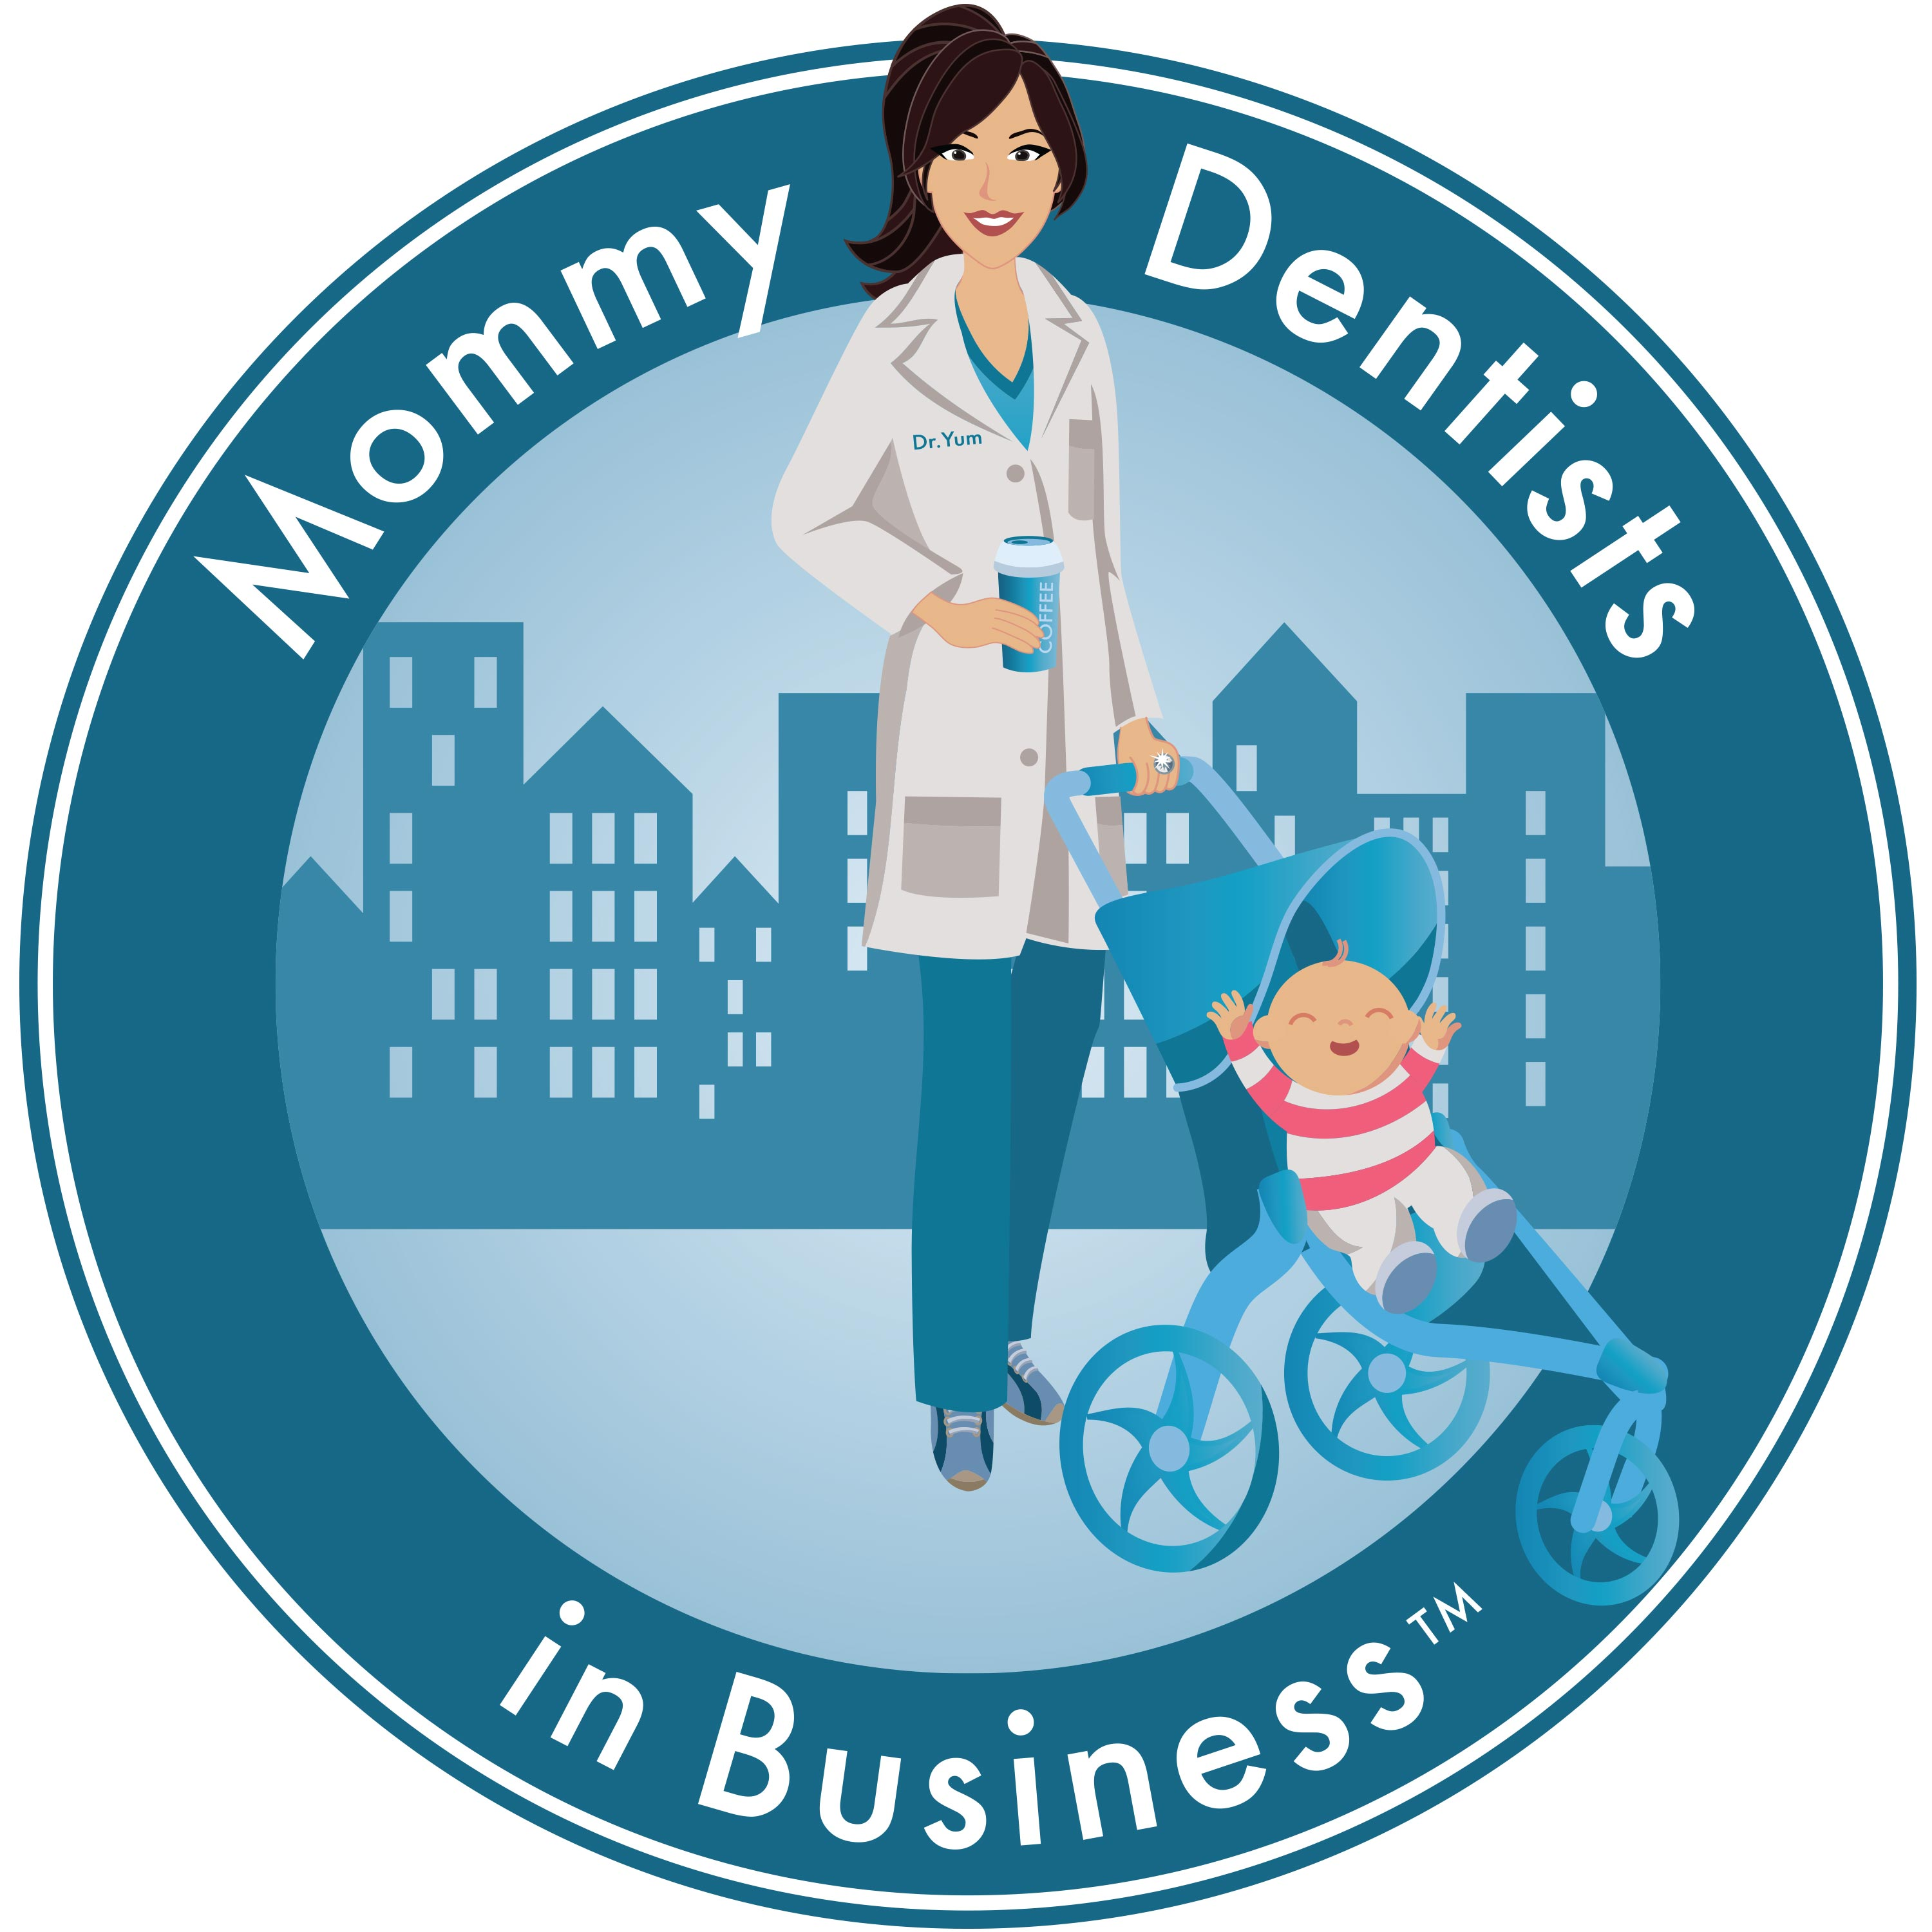 Mommy Dentists In Business show art